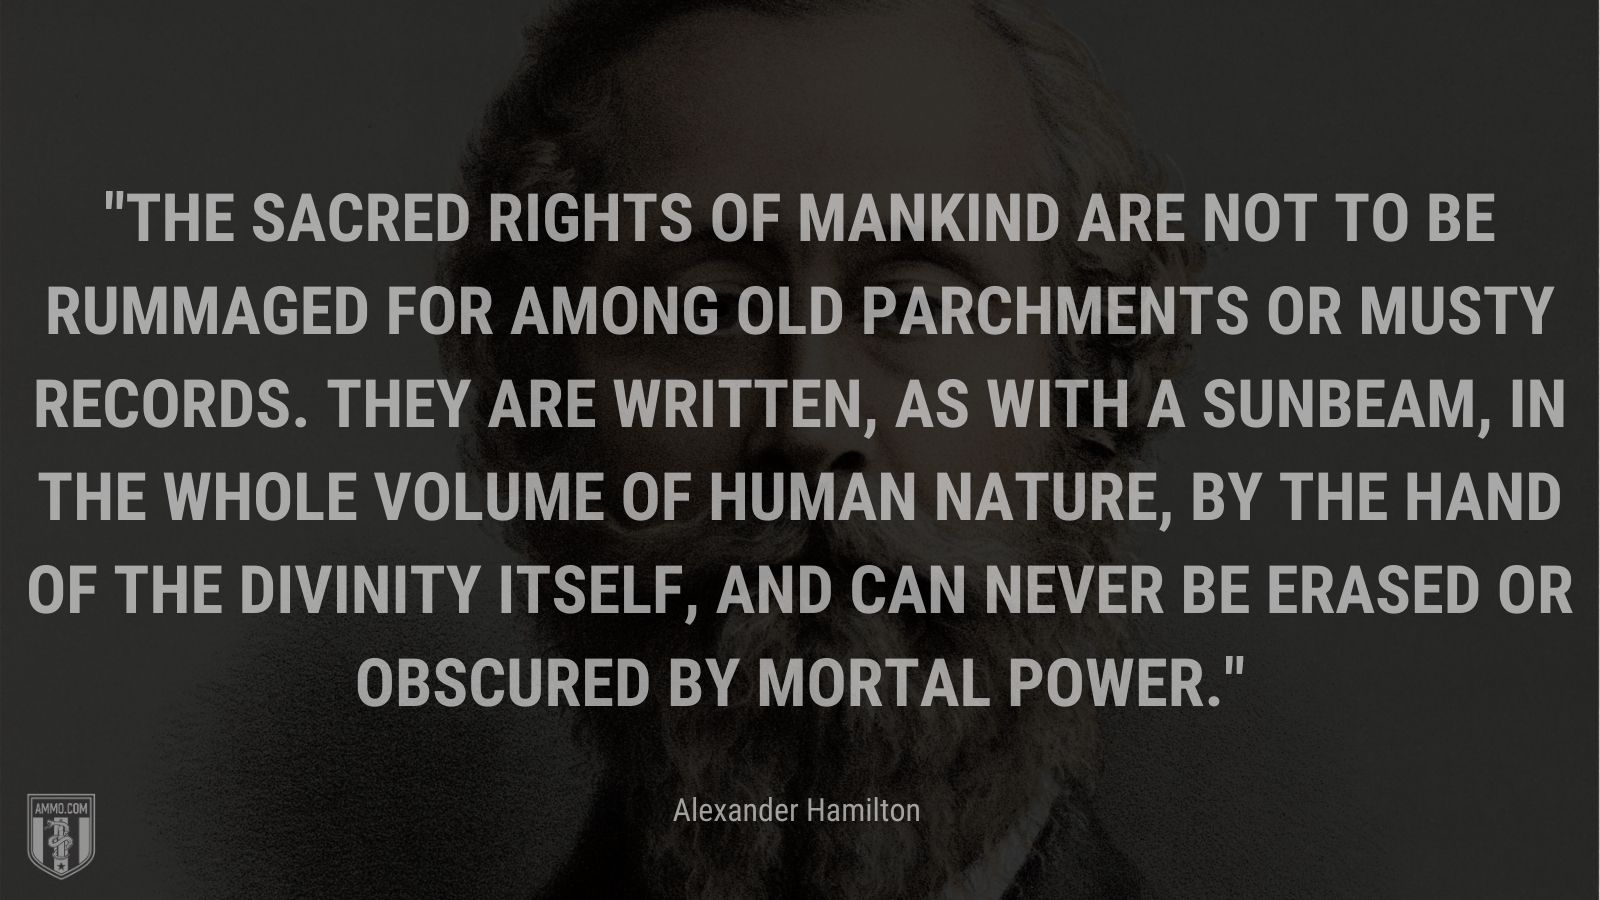 """""""The sacred rights of mankind are not to be rummaged for among old parchments or musty records. they are written, as with a sunbeam, in the whole volume of human nature, by the hand of the divinity itself, and can never be erased or obscured by mortal power."""" - Alexander Hamilton"""